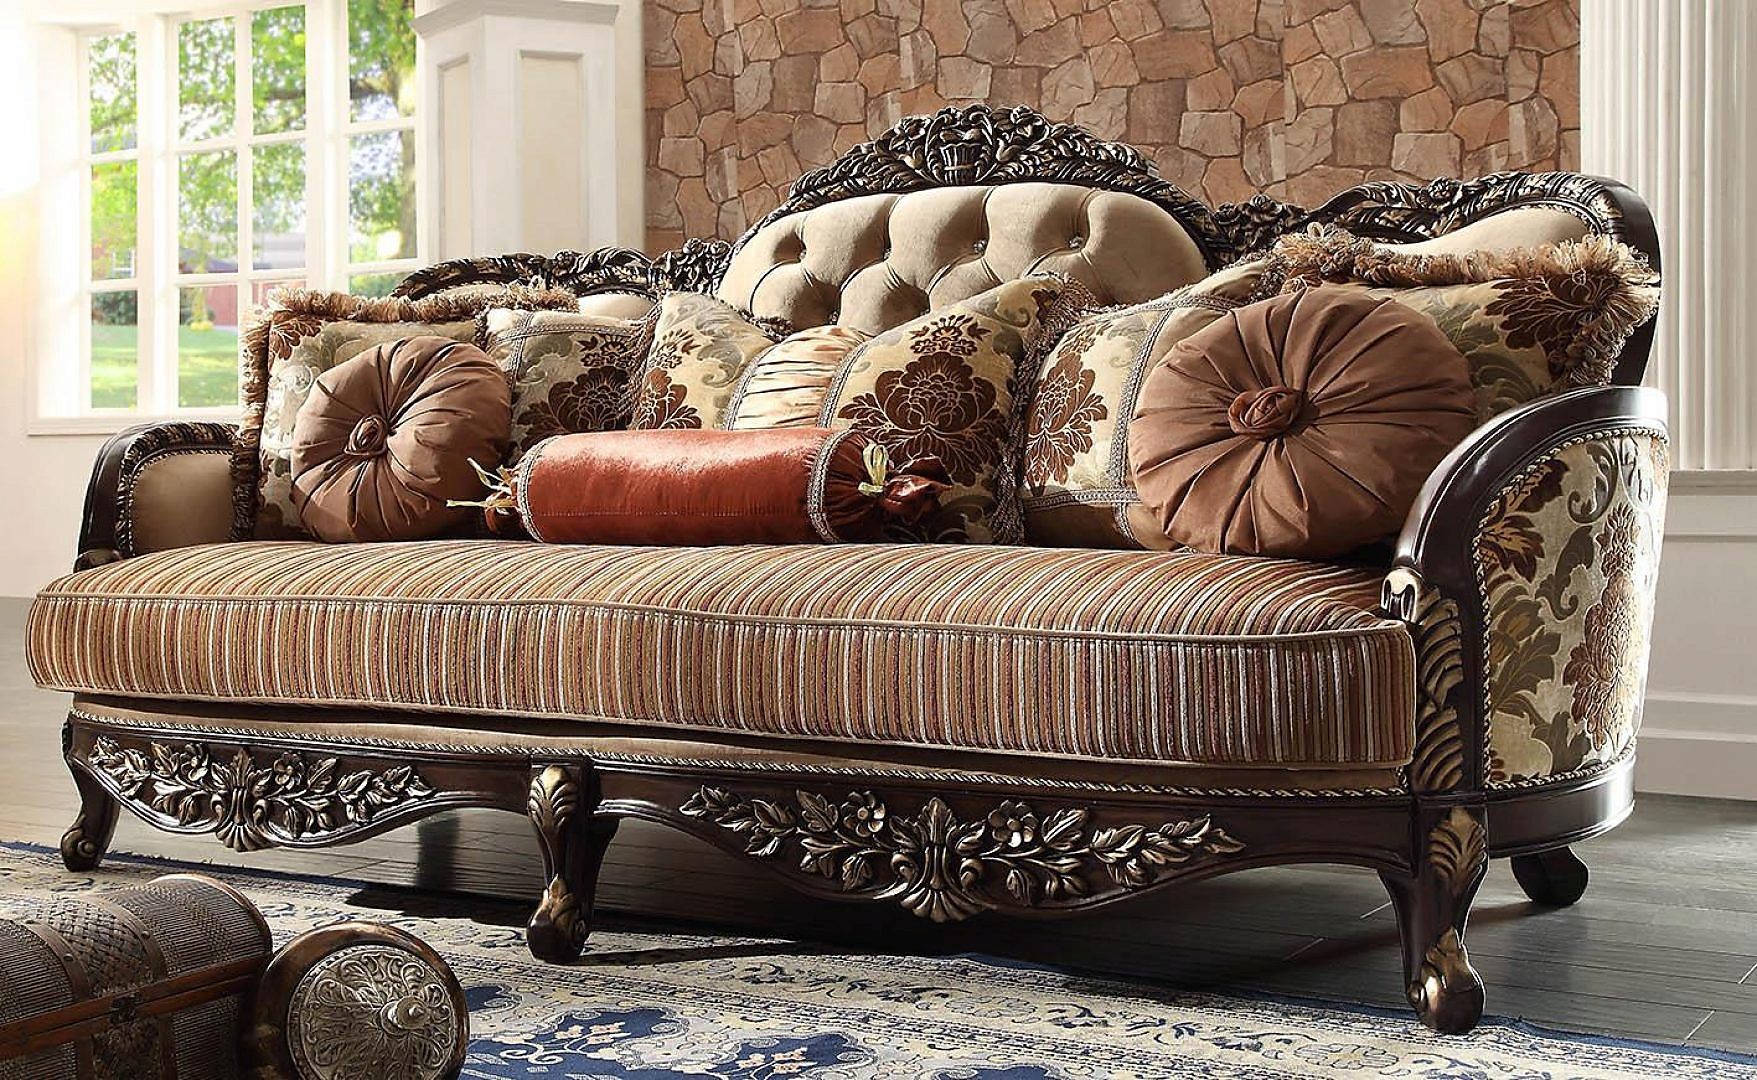 Traditional Carved HD-1976 Sofa in Beige by Homey Design